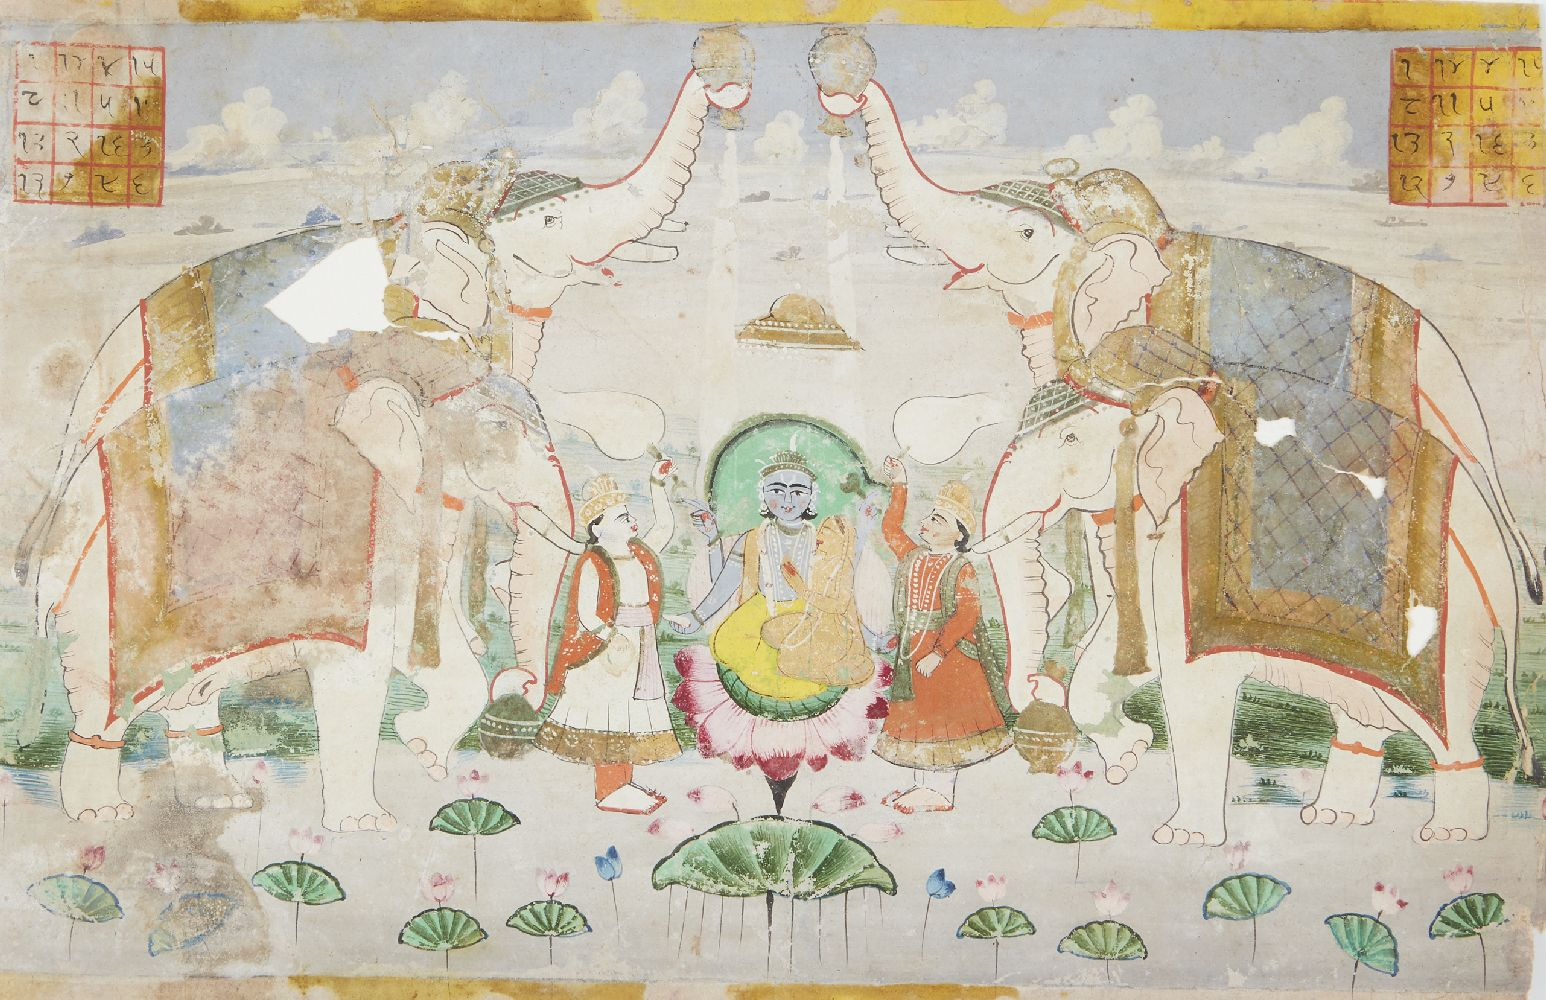 Krishna seated on a lotus flower attended by two priests and elephants, Rajasthan, circa 1820,